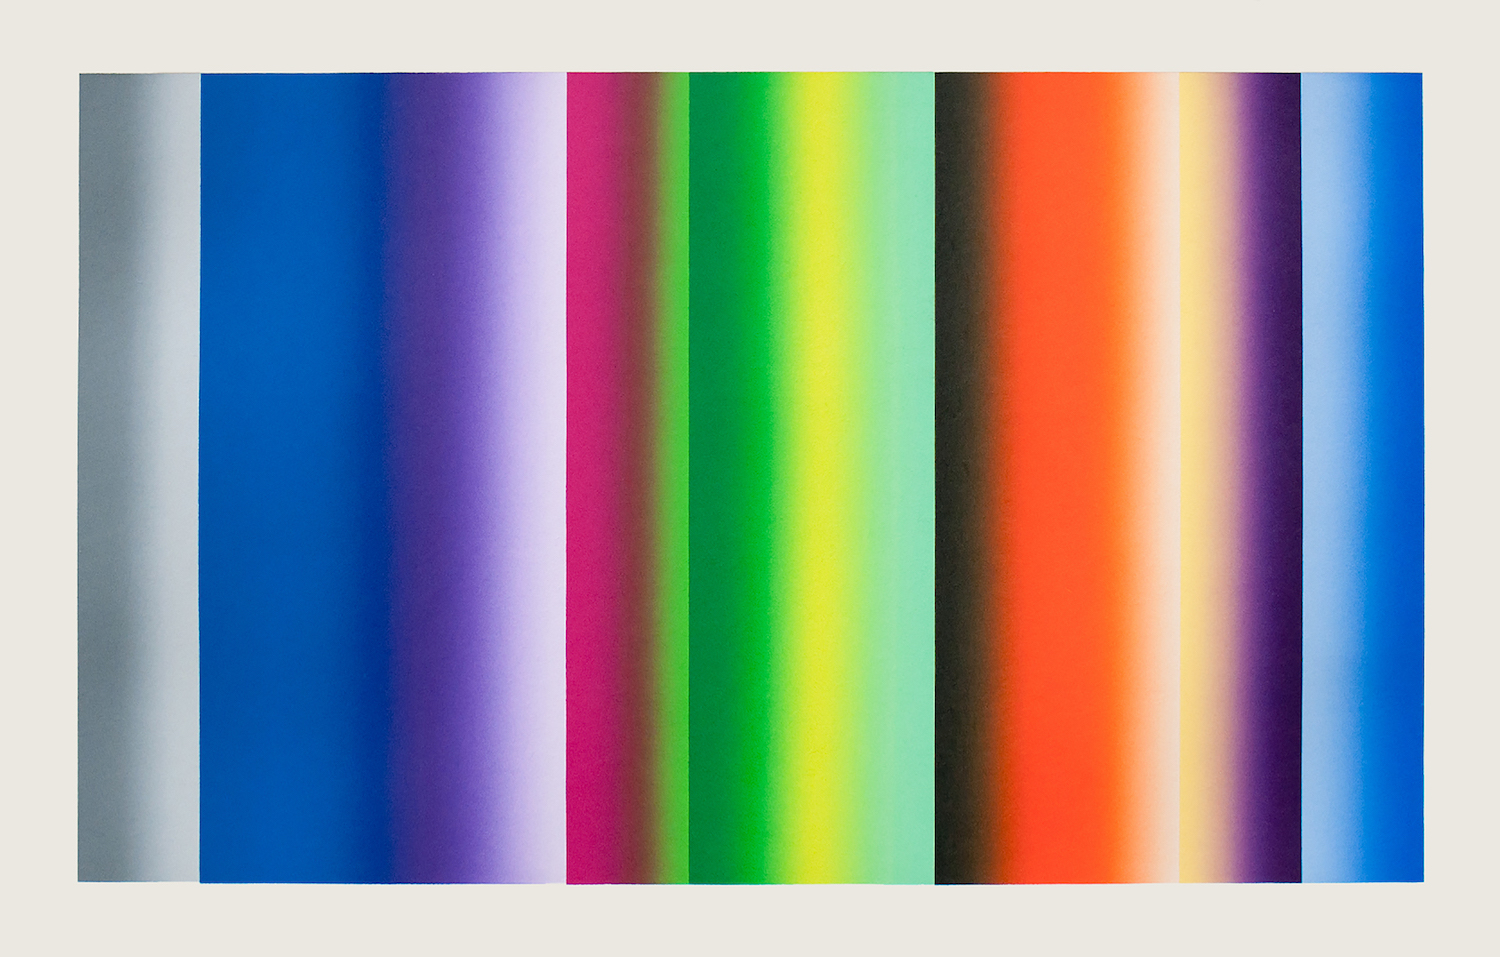 Vertical stripes of color in gray, blue, purple, pink green, yellow, and orange blend into one another or fade to white to form multiple gradient effects.